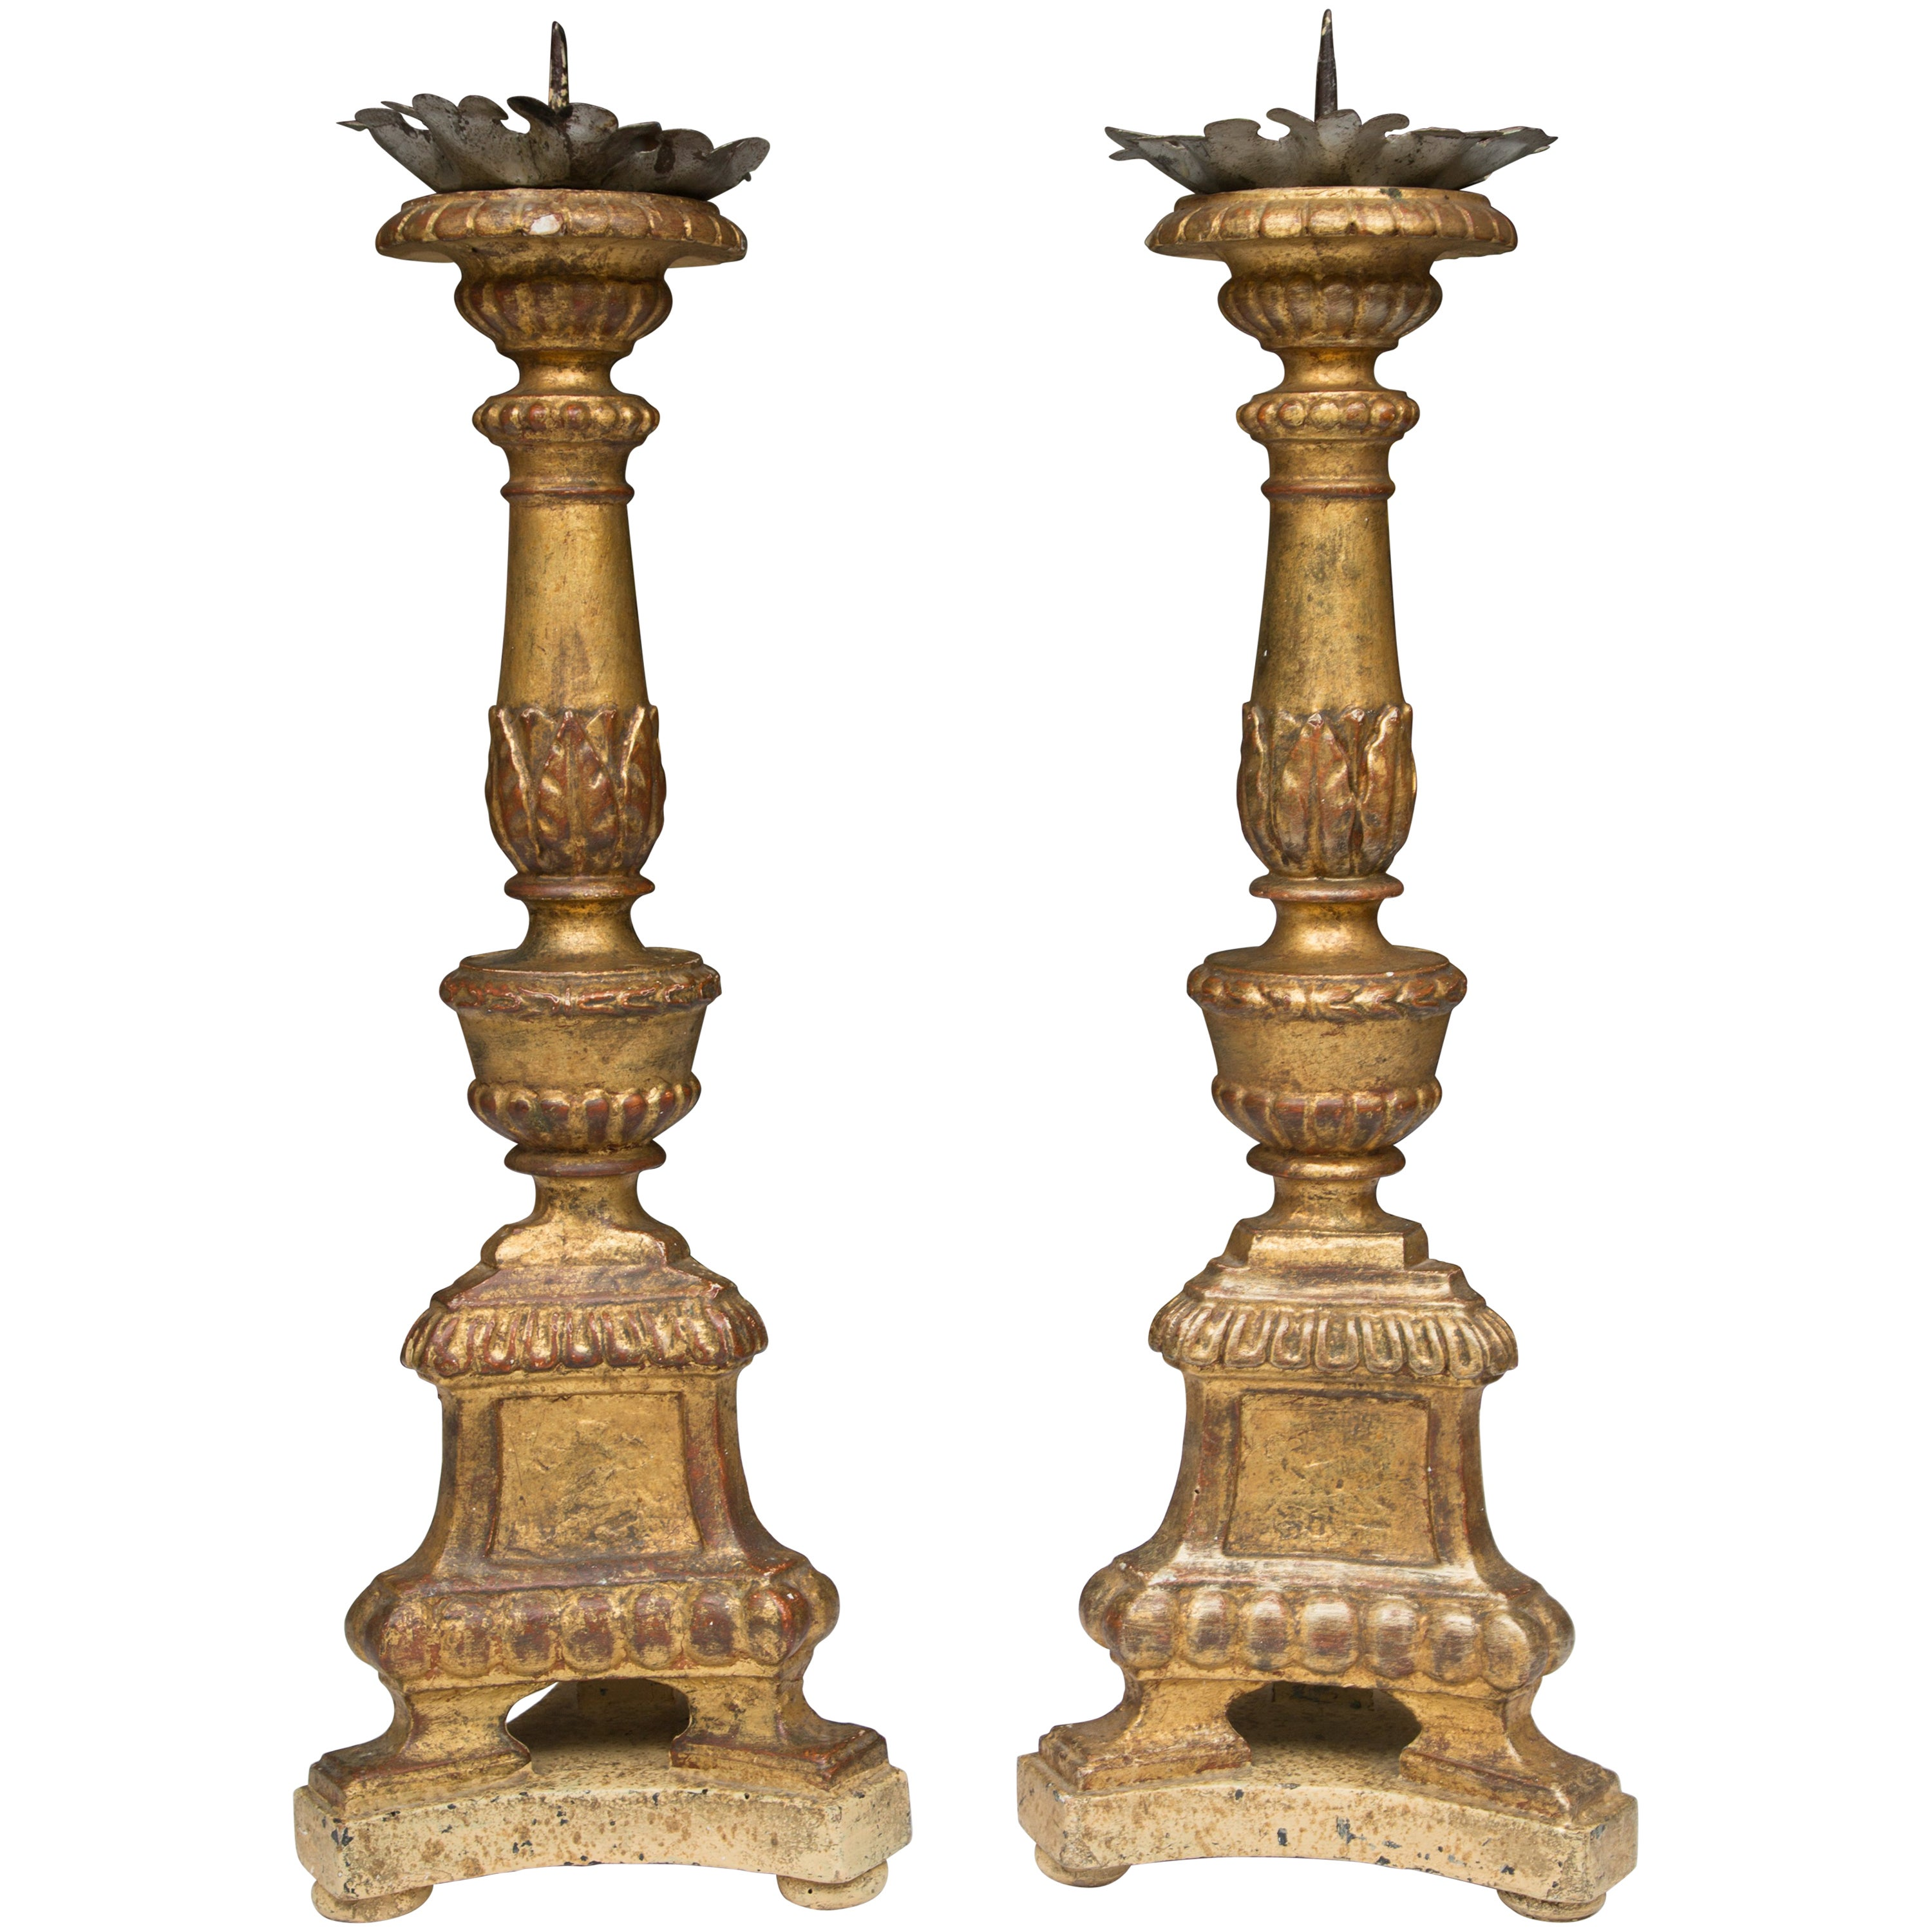 A Pair of Italian Carved Giltwood Pricket Sticks, 19th Century